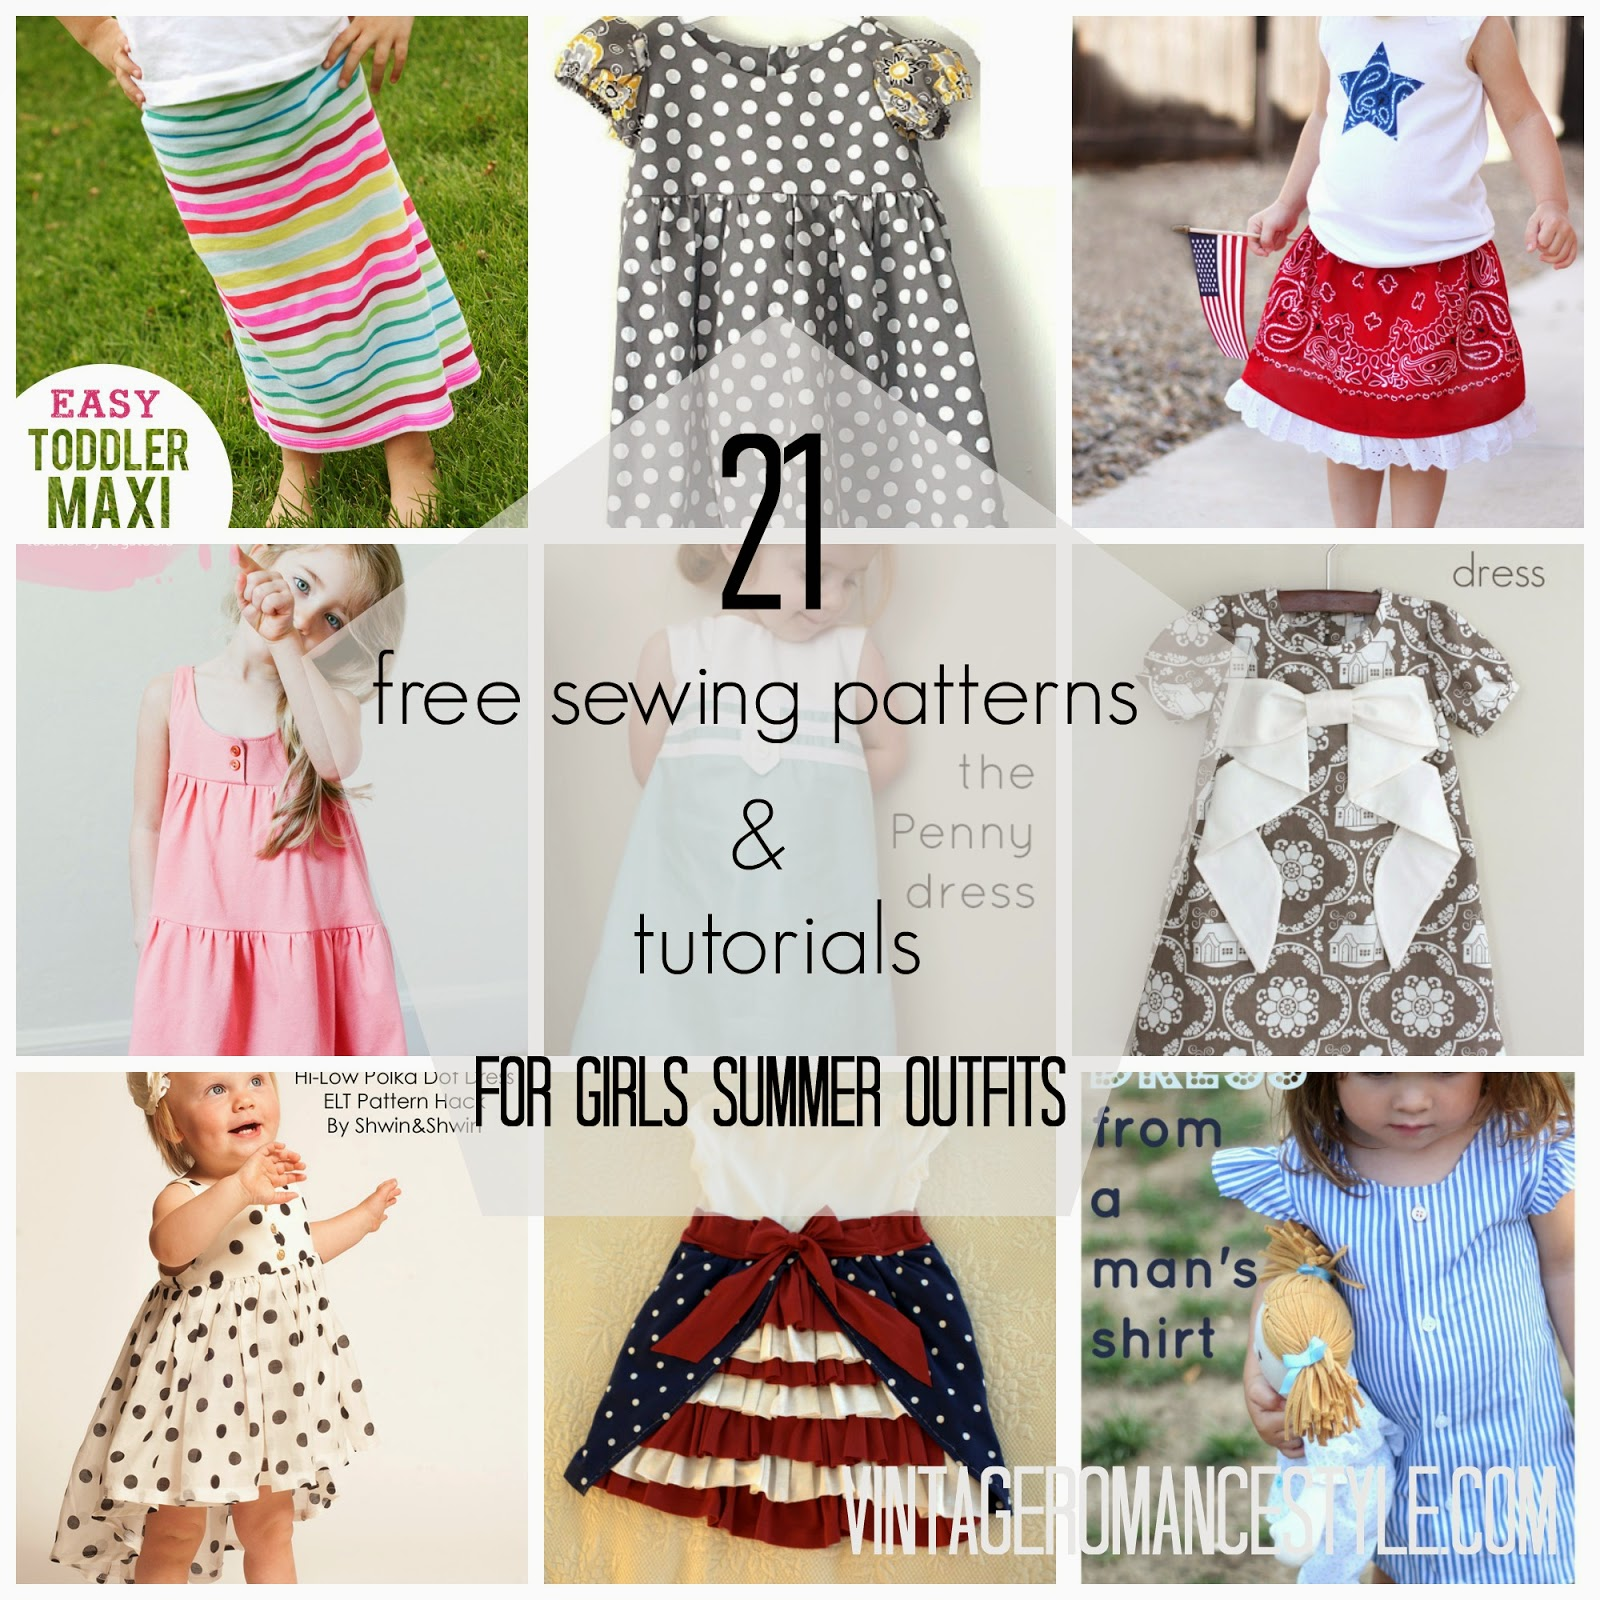 21 Free Sewing Patterns & Tutorials for Girl\'s Summer Outfits ...